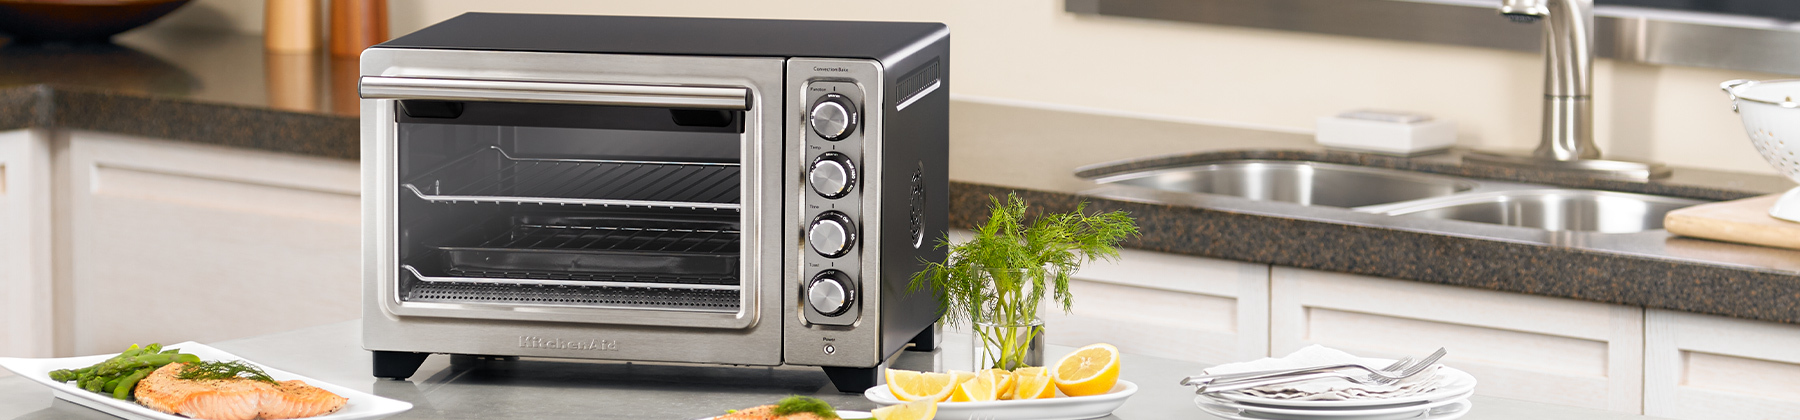 Photo of toaster oven.